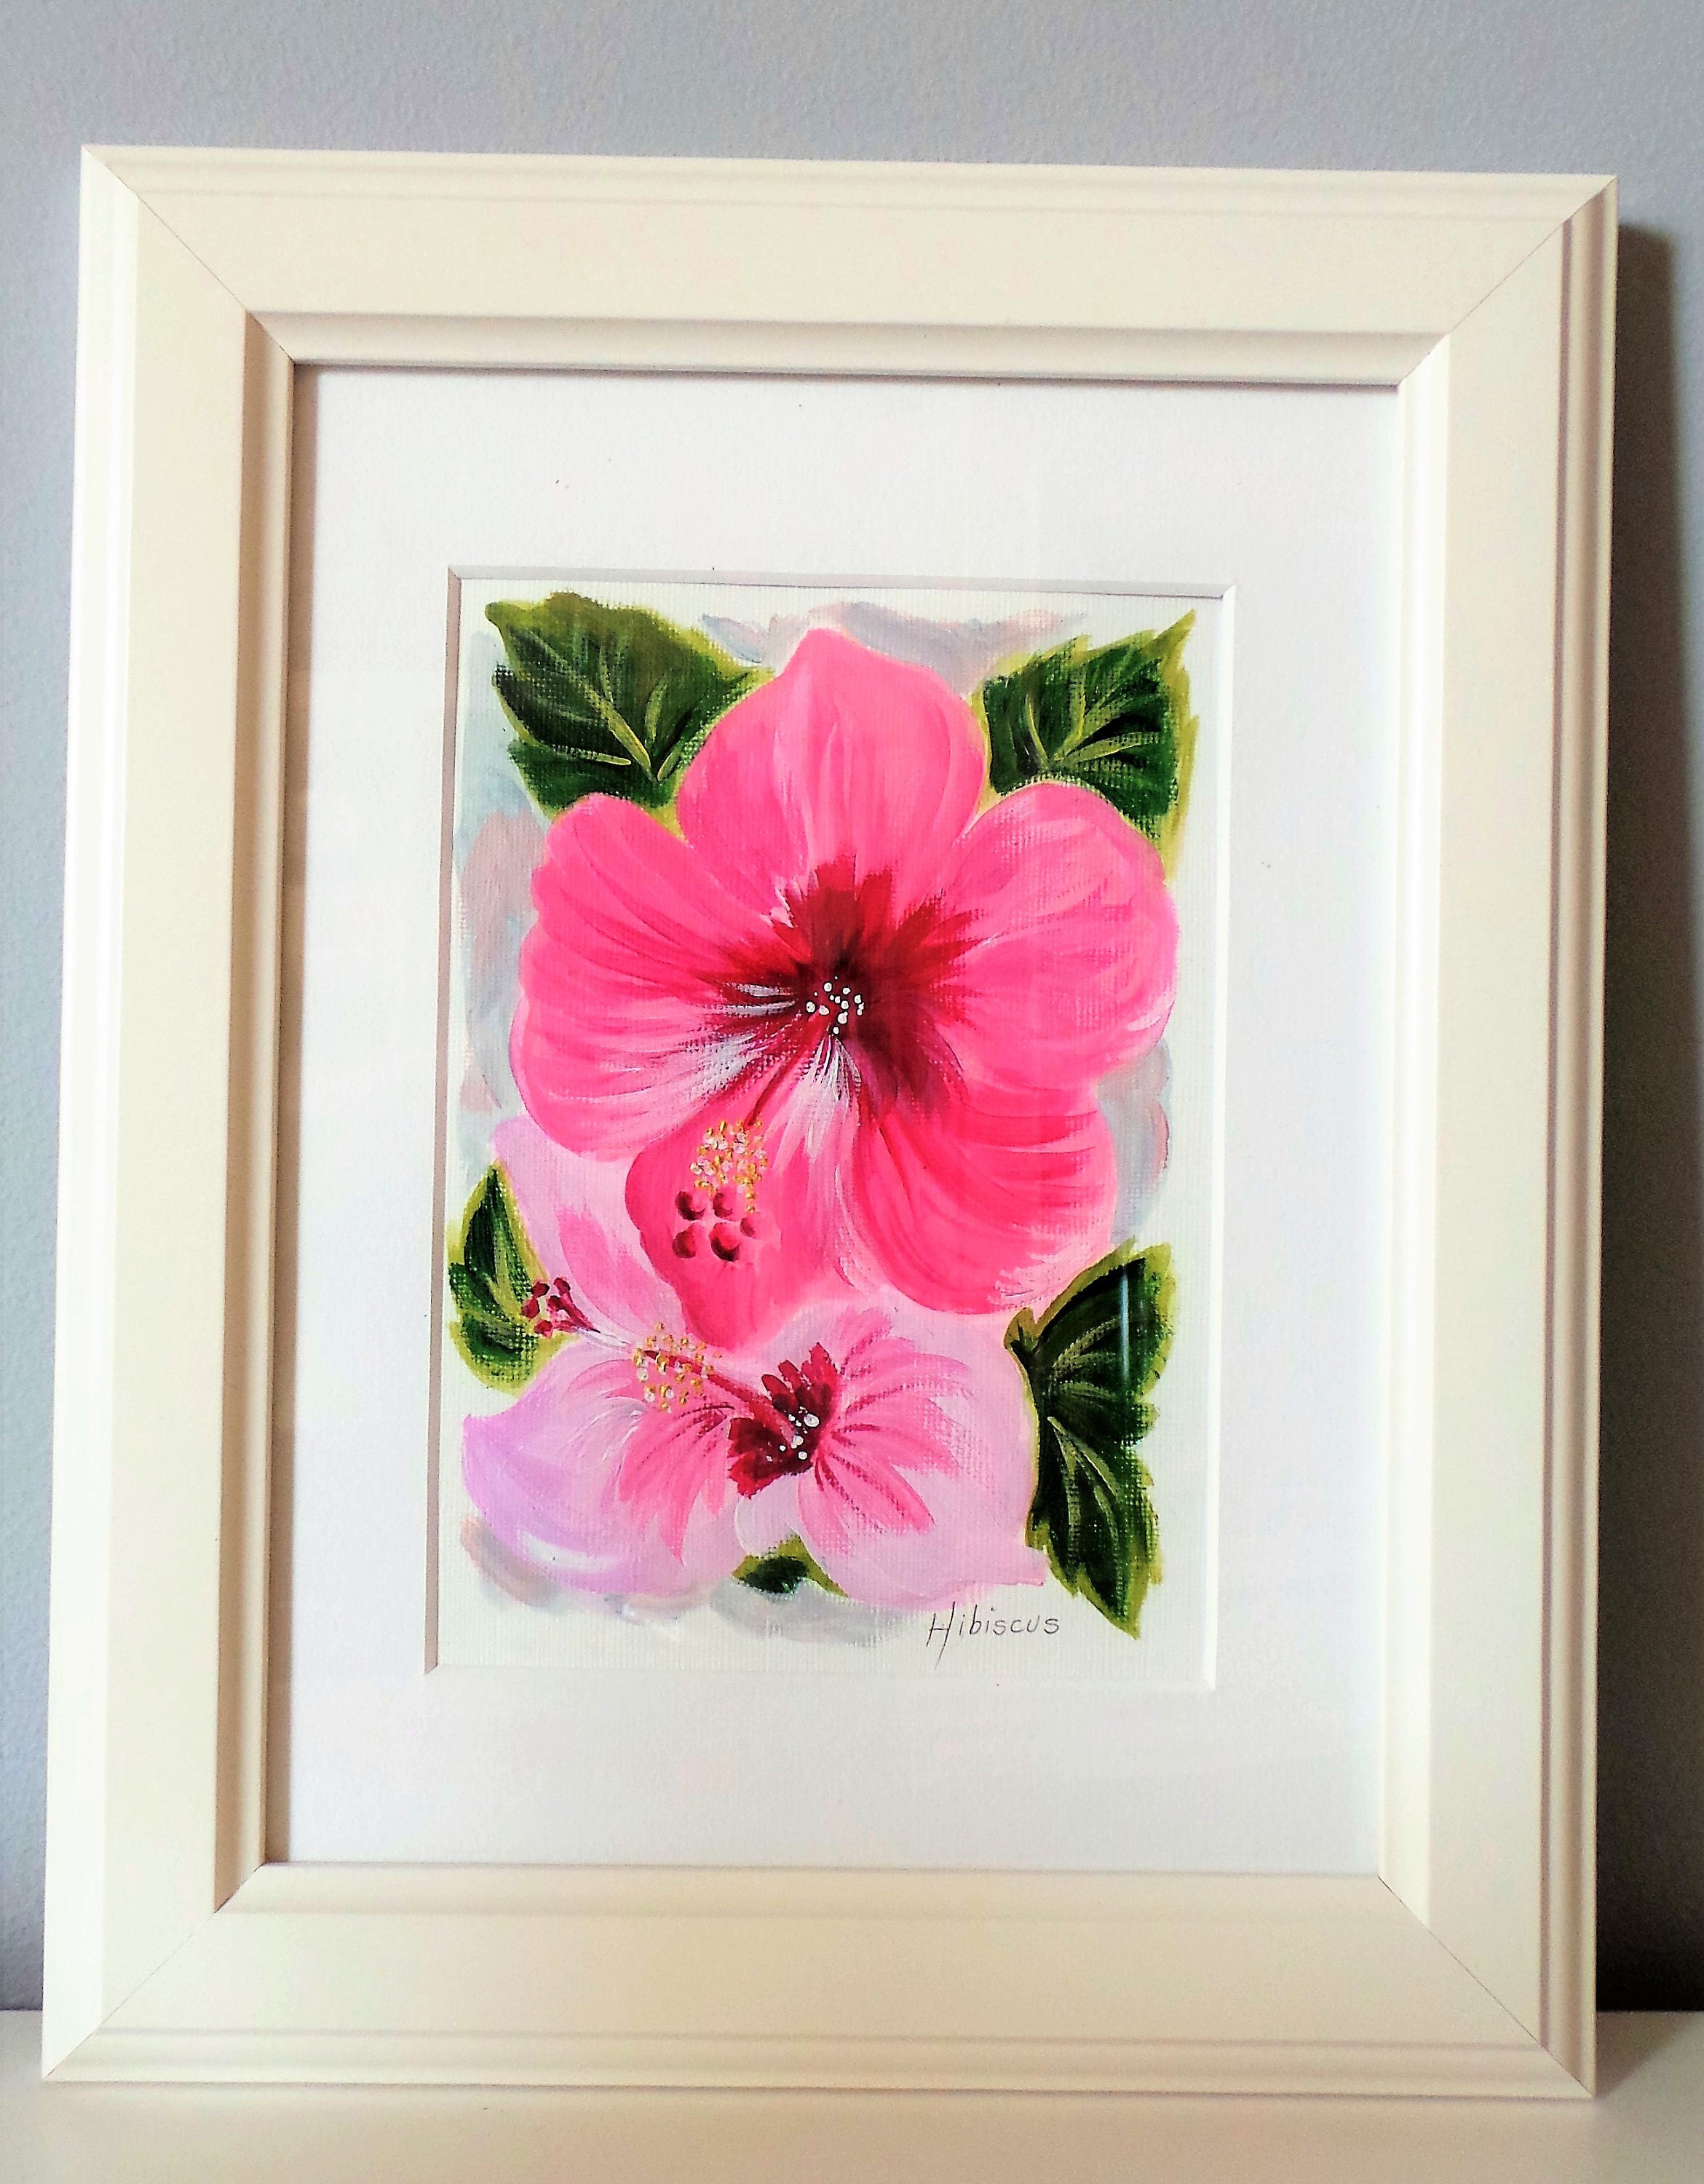 Hibiscus floral abstract acrylic painting hibiscus art etsy hibiscus floral abstract acrylic painting hibiscus art small hibiscus painting floral wall art pink flowers flower lovers art izmirmasajfo